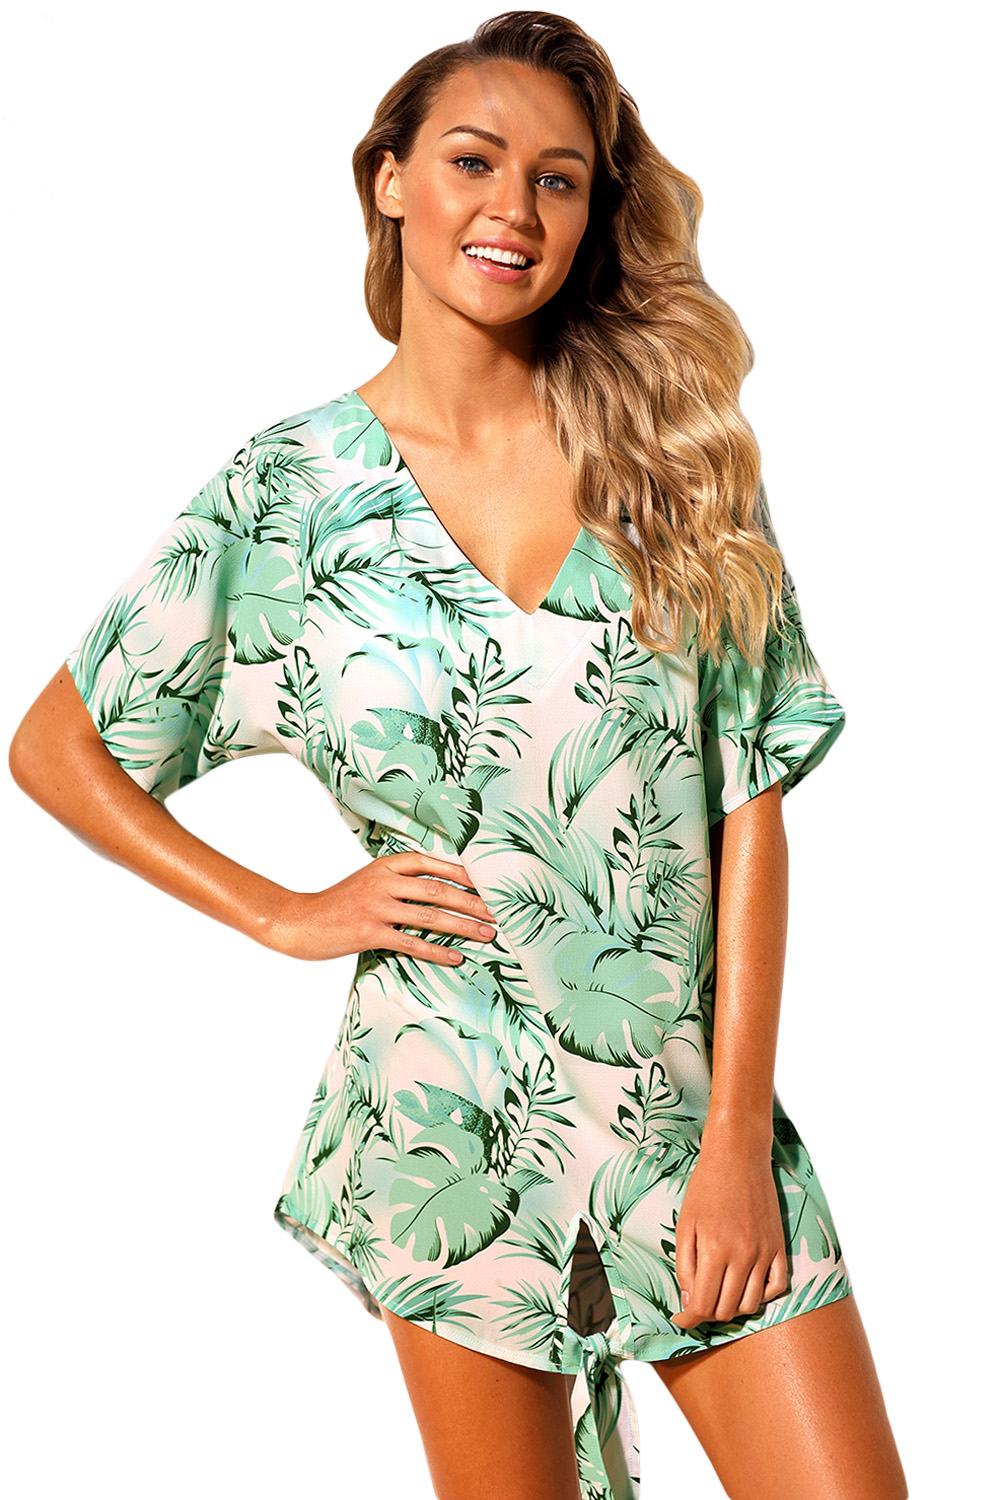 Sexy Tie The Knot With Palm Printed Beach Cover-up Dress Women V Neck Short Sleeves Swimwear Skirted Bathingsuit Summer Wear